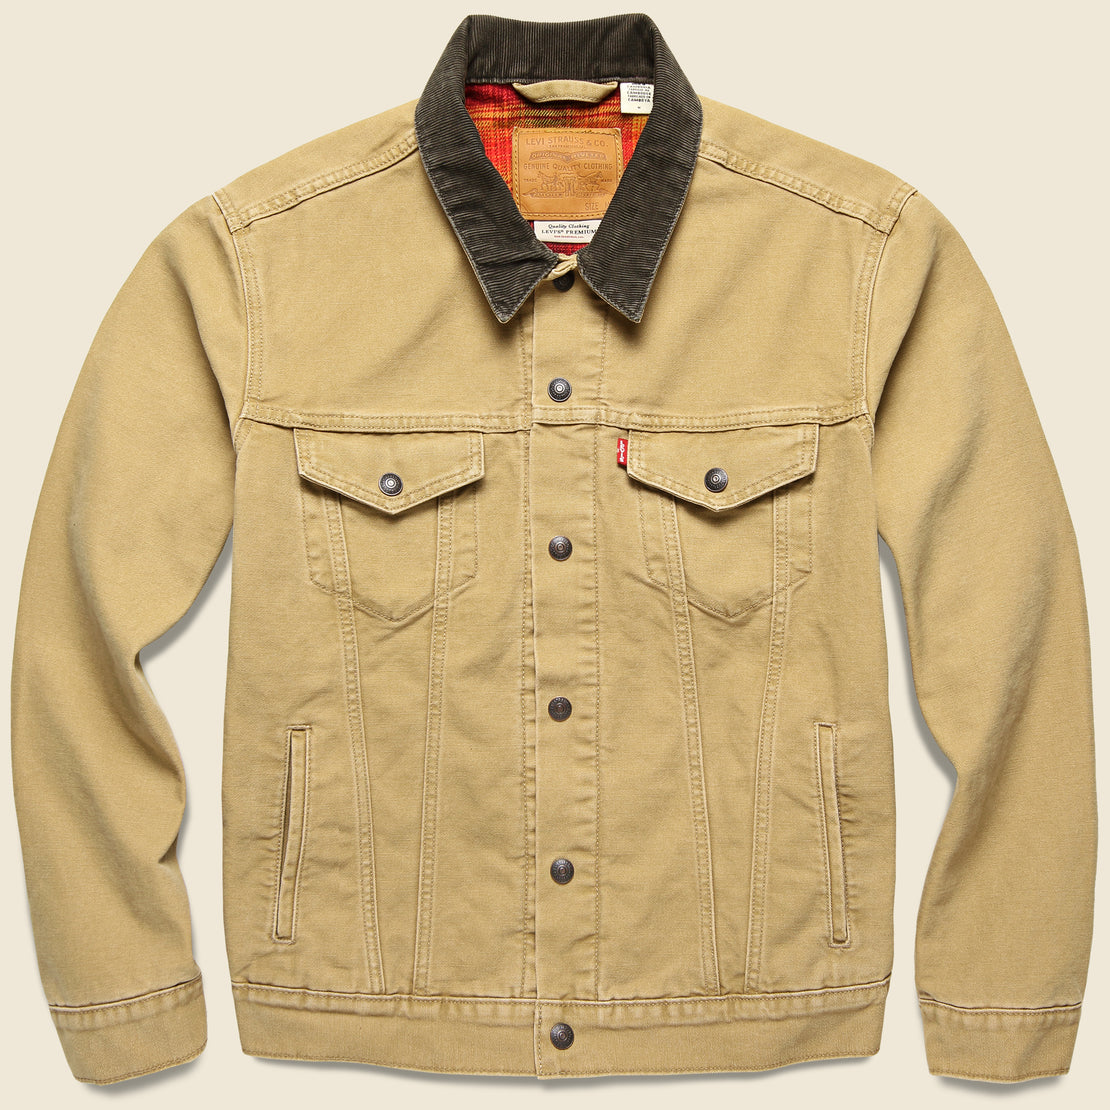 Levis Premium Lined Trucker Jacket - Dijon Canvas